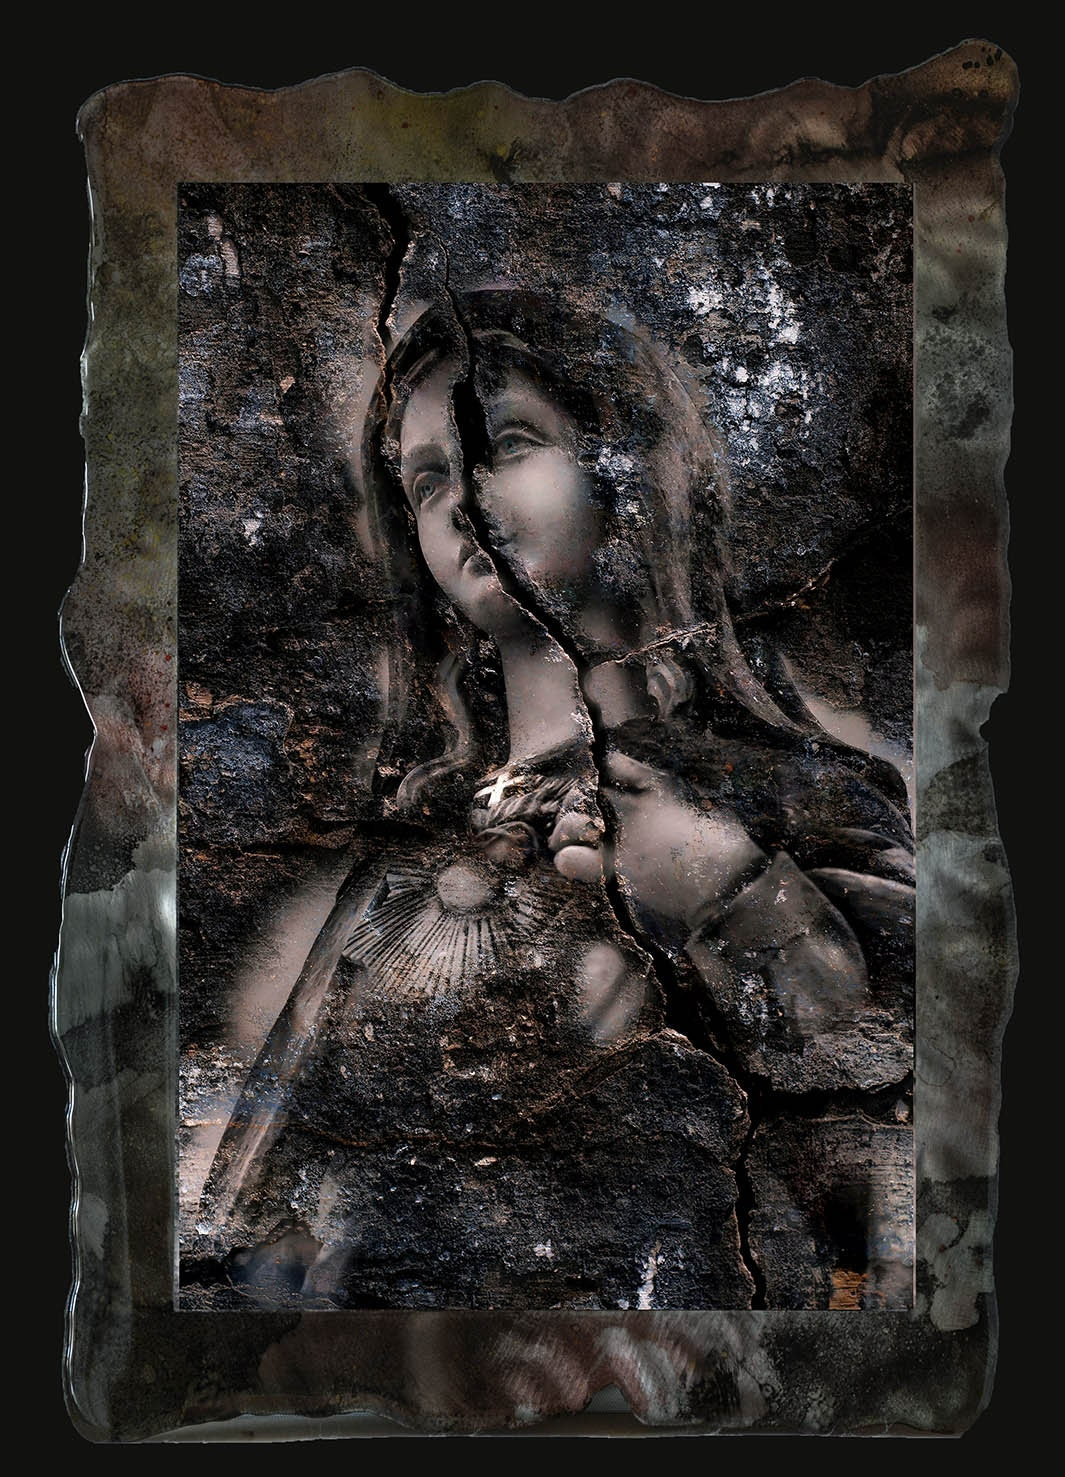 18x27 Vivid Framed Digital Art Photo Of Madonna On Metal Plate With Resin Clear Coat Smaller Larger Sizes Available